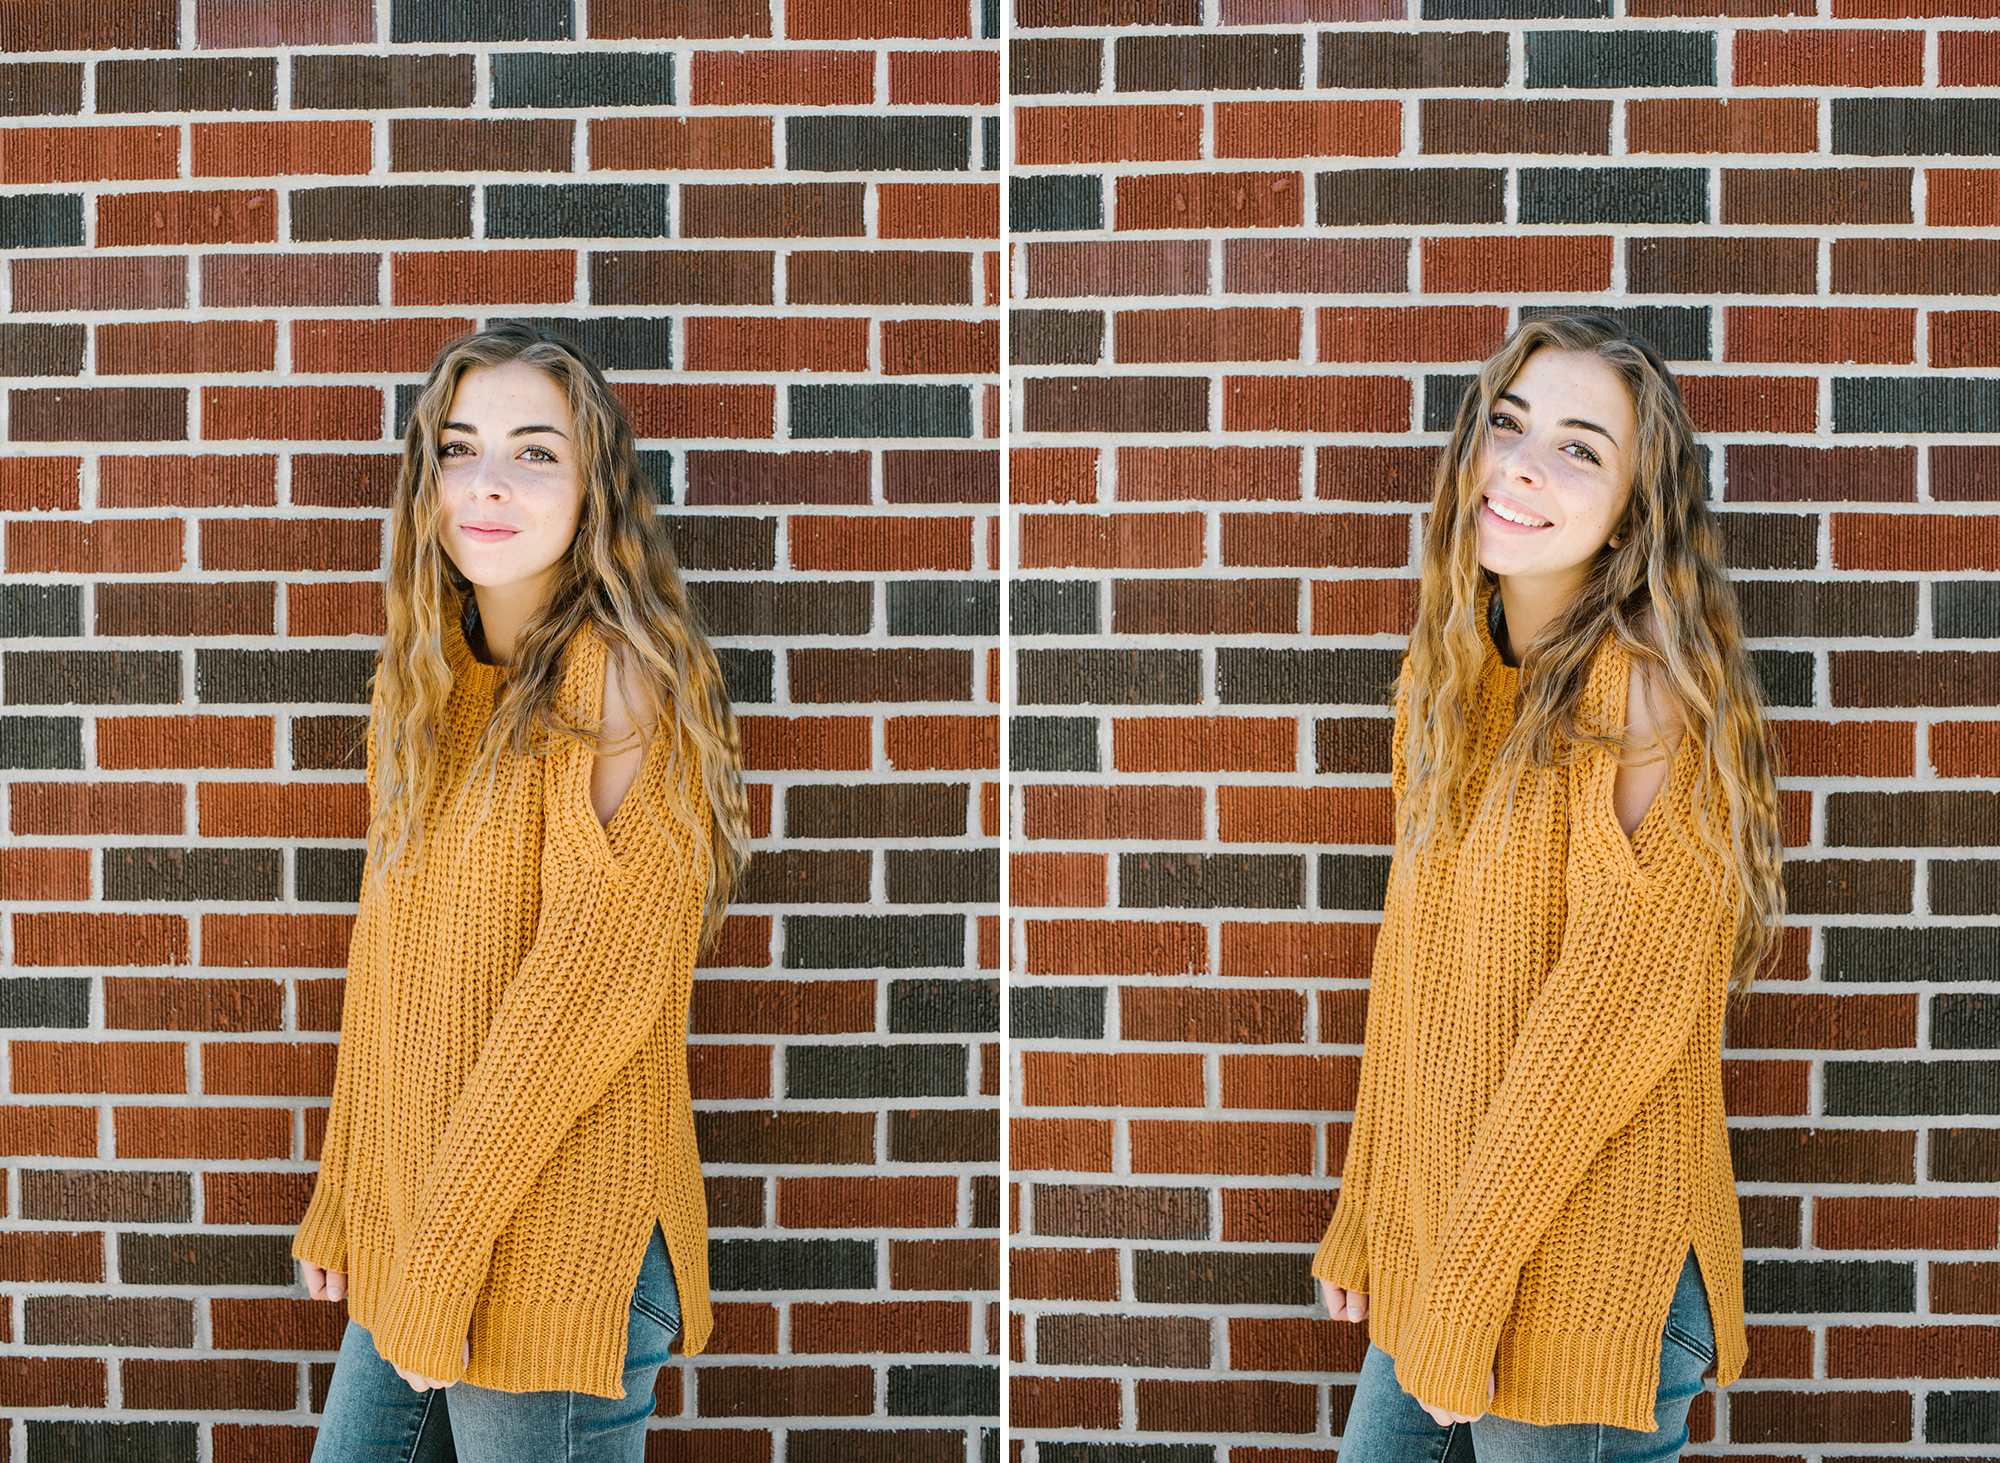 grand-haven-michigan-senior-photography-sydney-marie.png